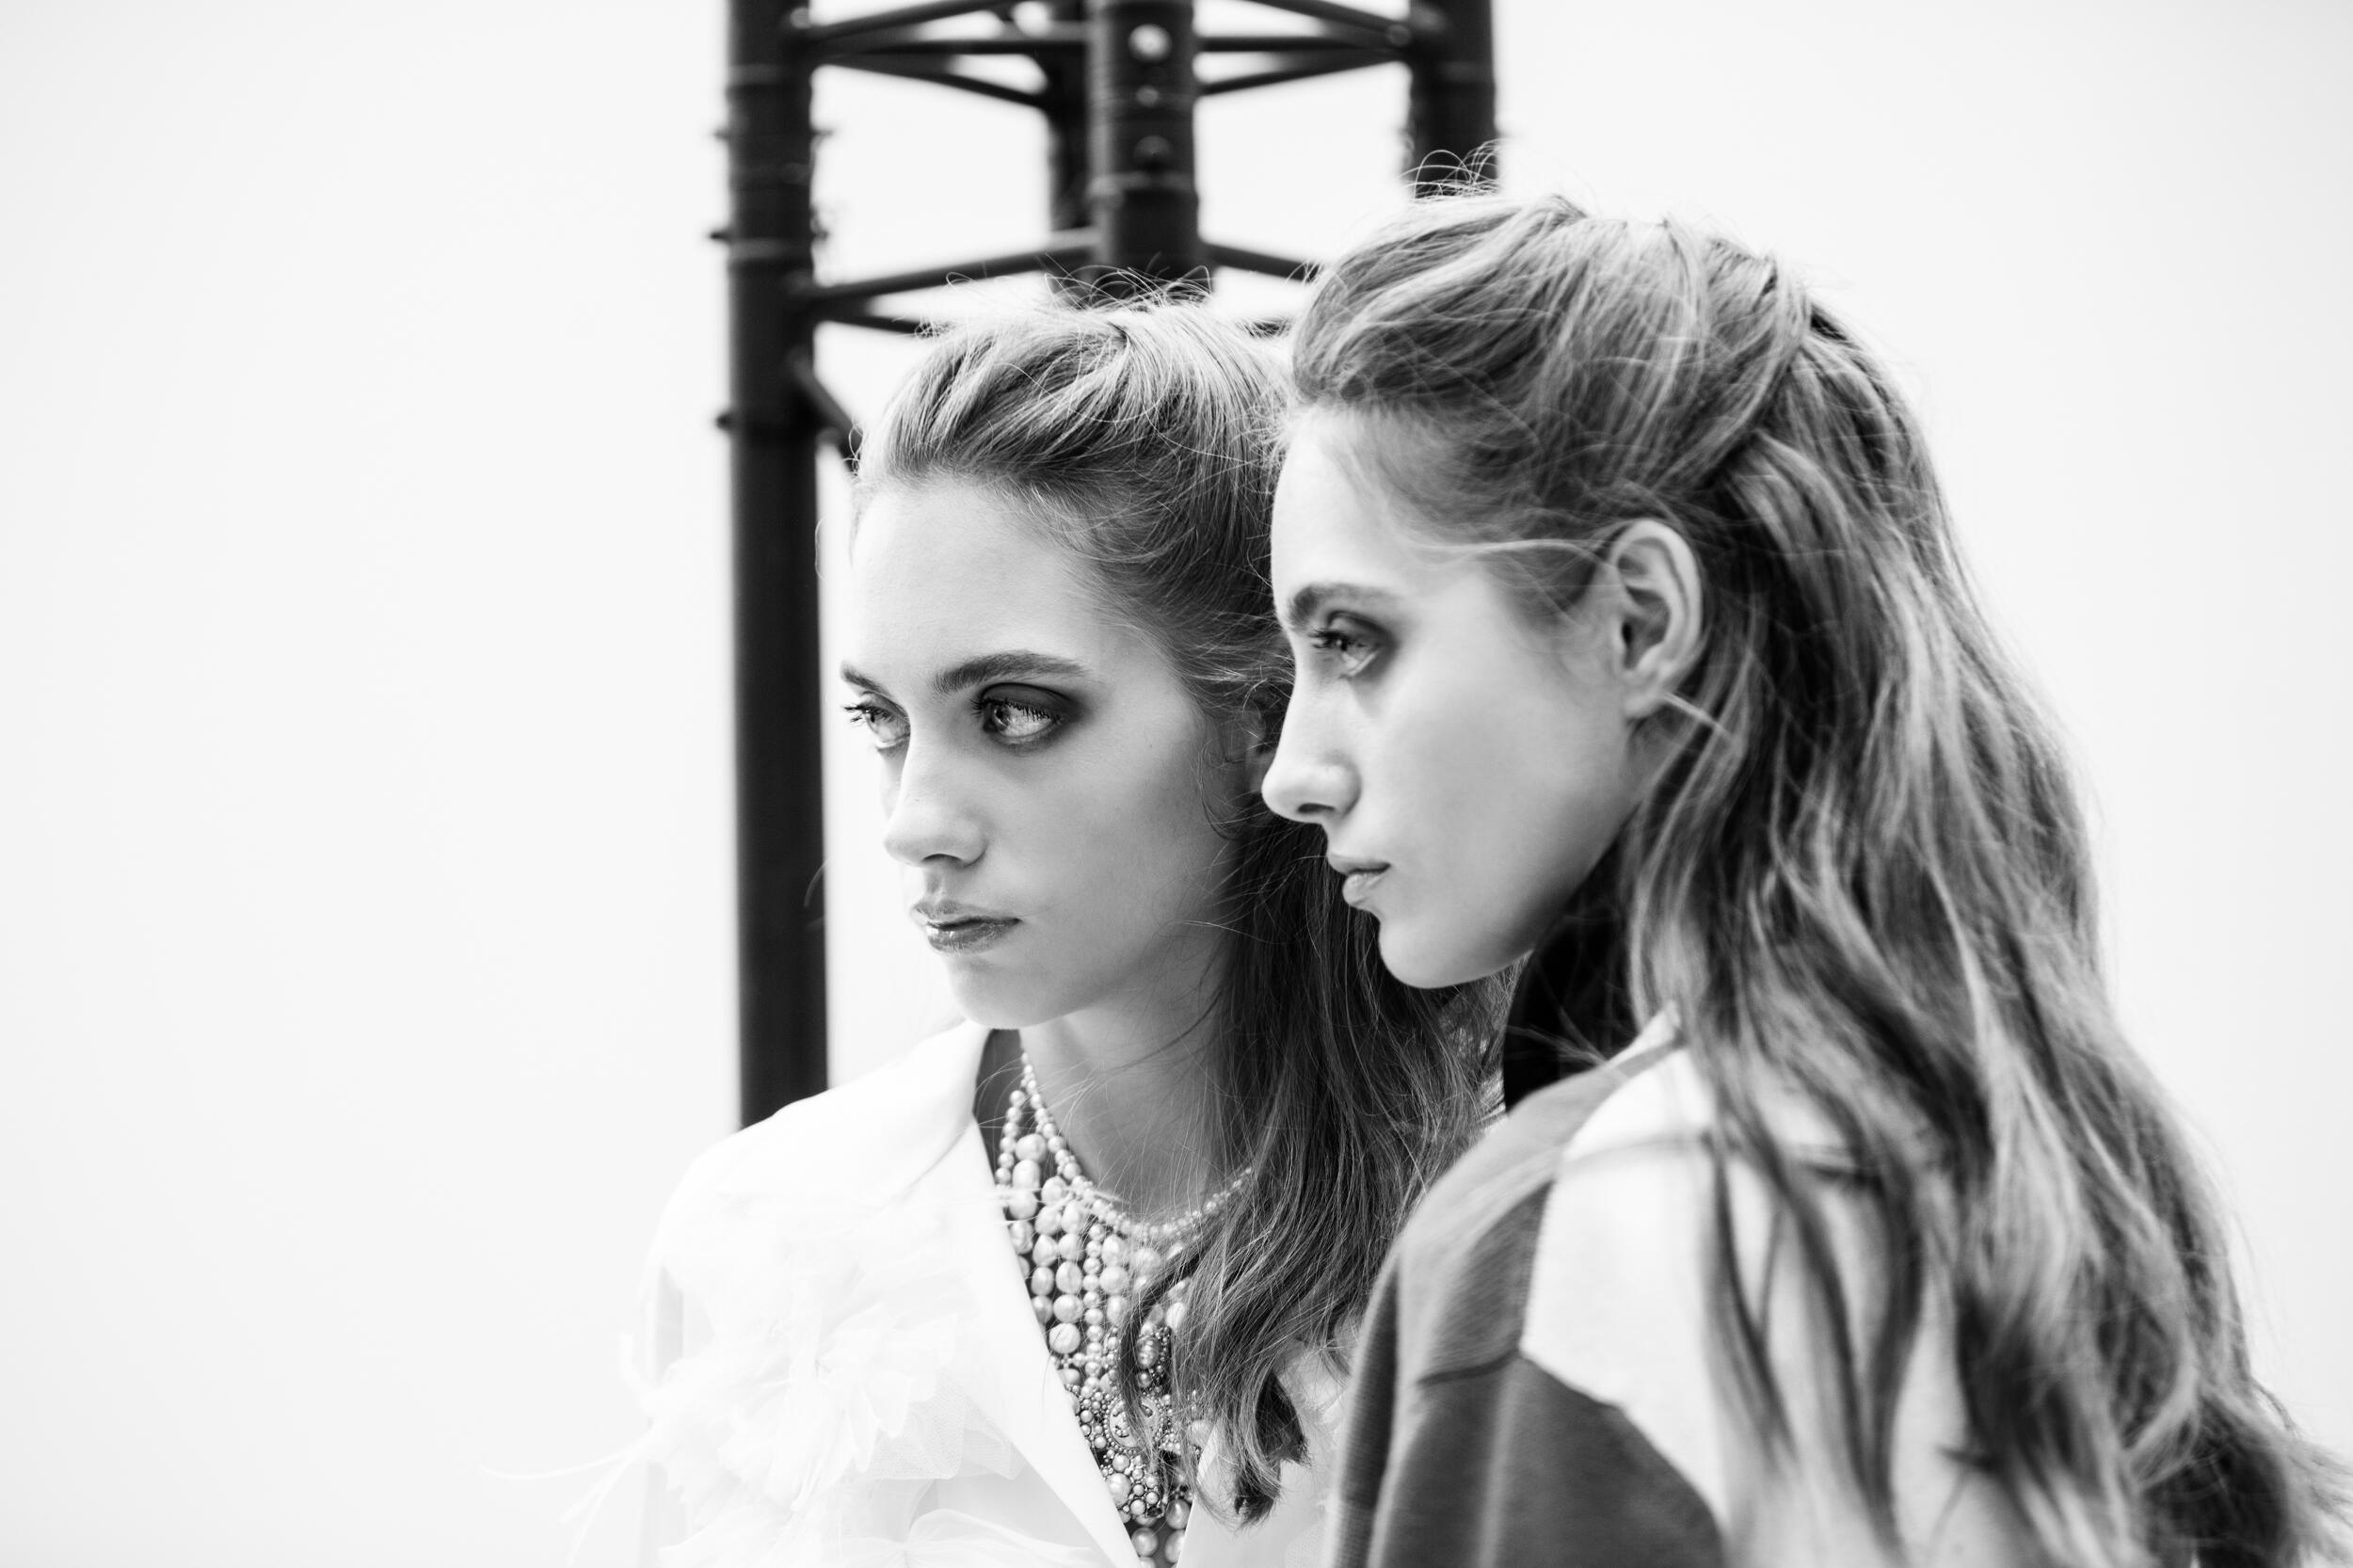 2020 Backstage Chanel Women Models